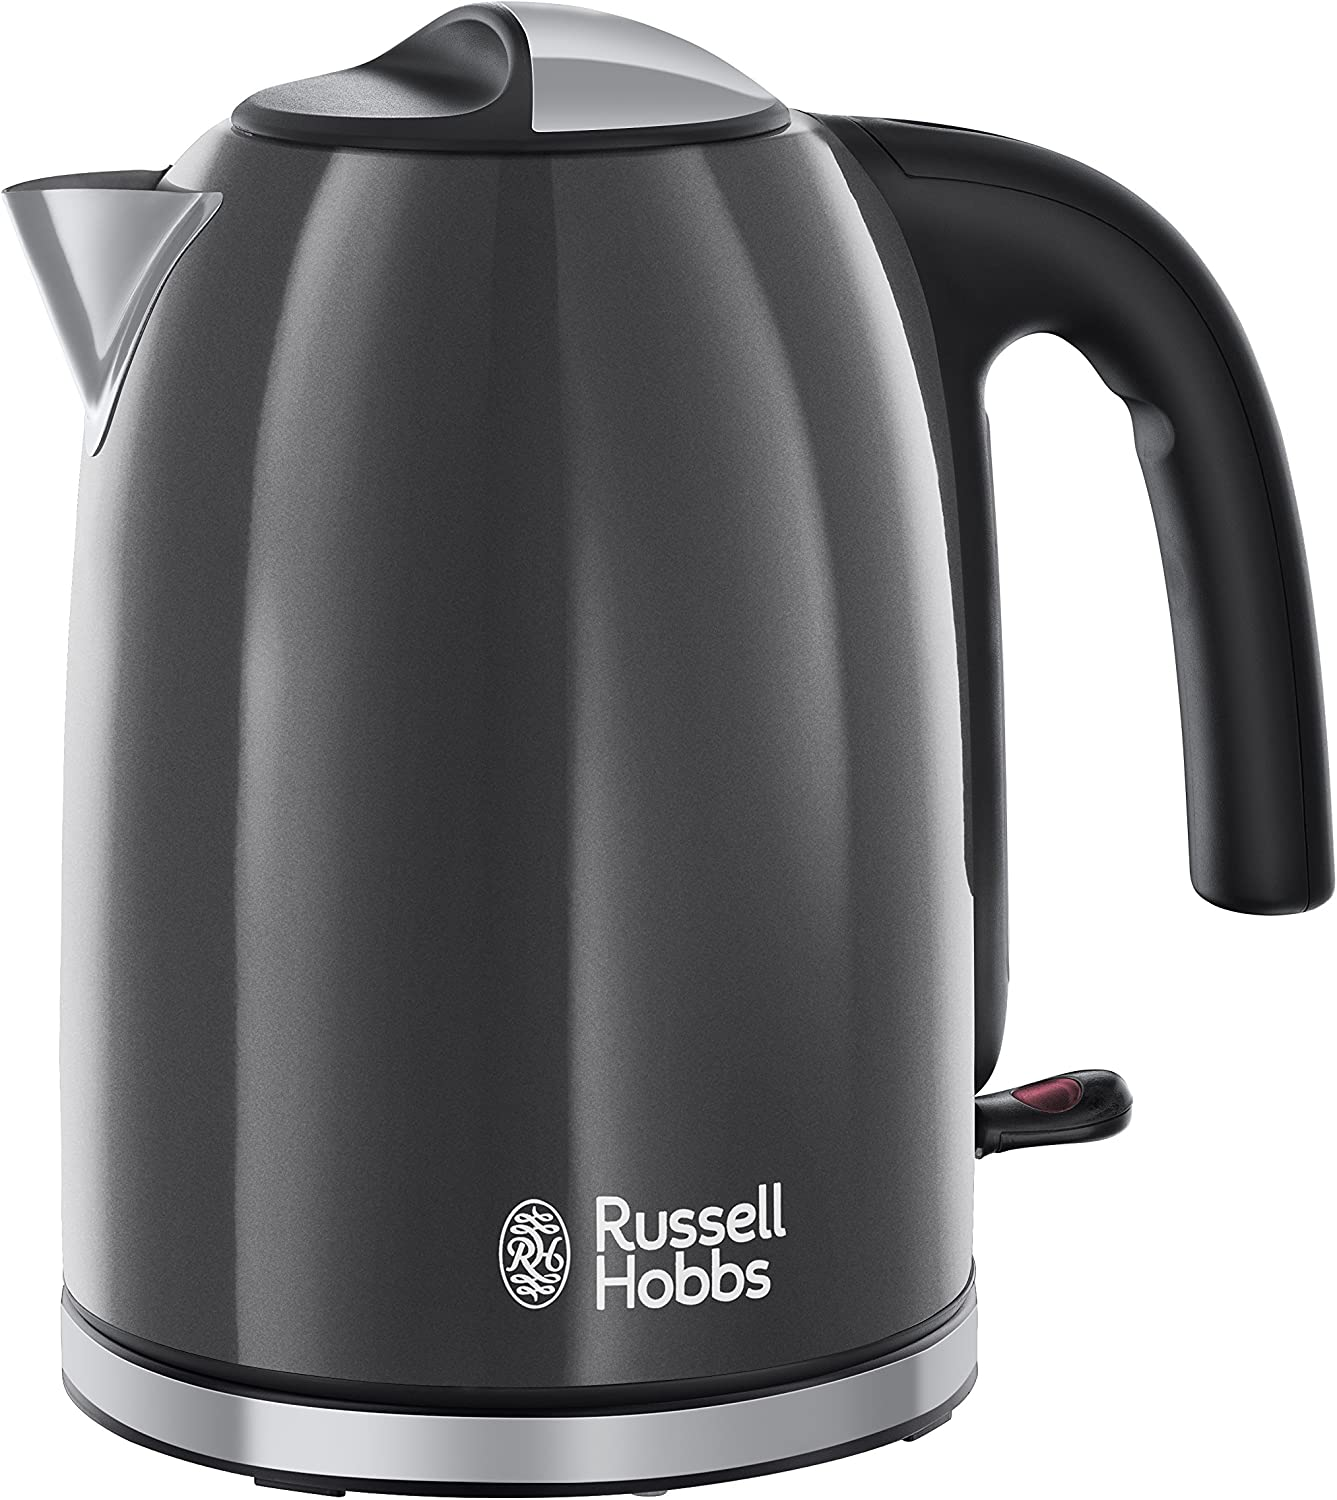 Buy Russell Hobbs 1.7L Colours Kettle